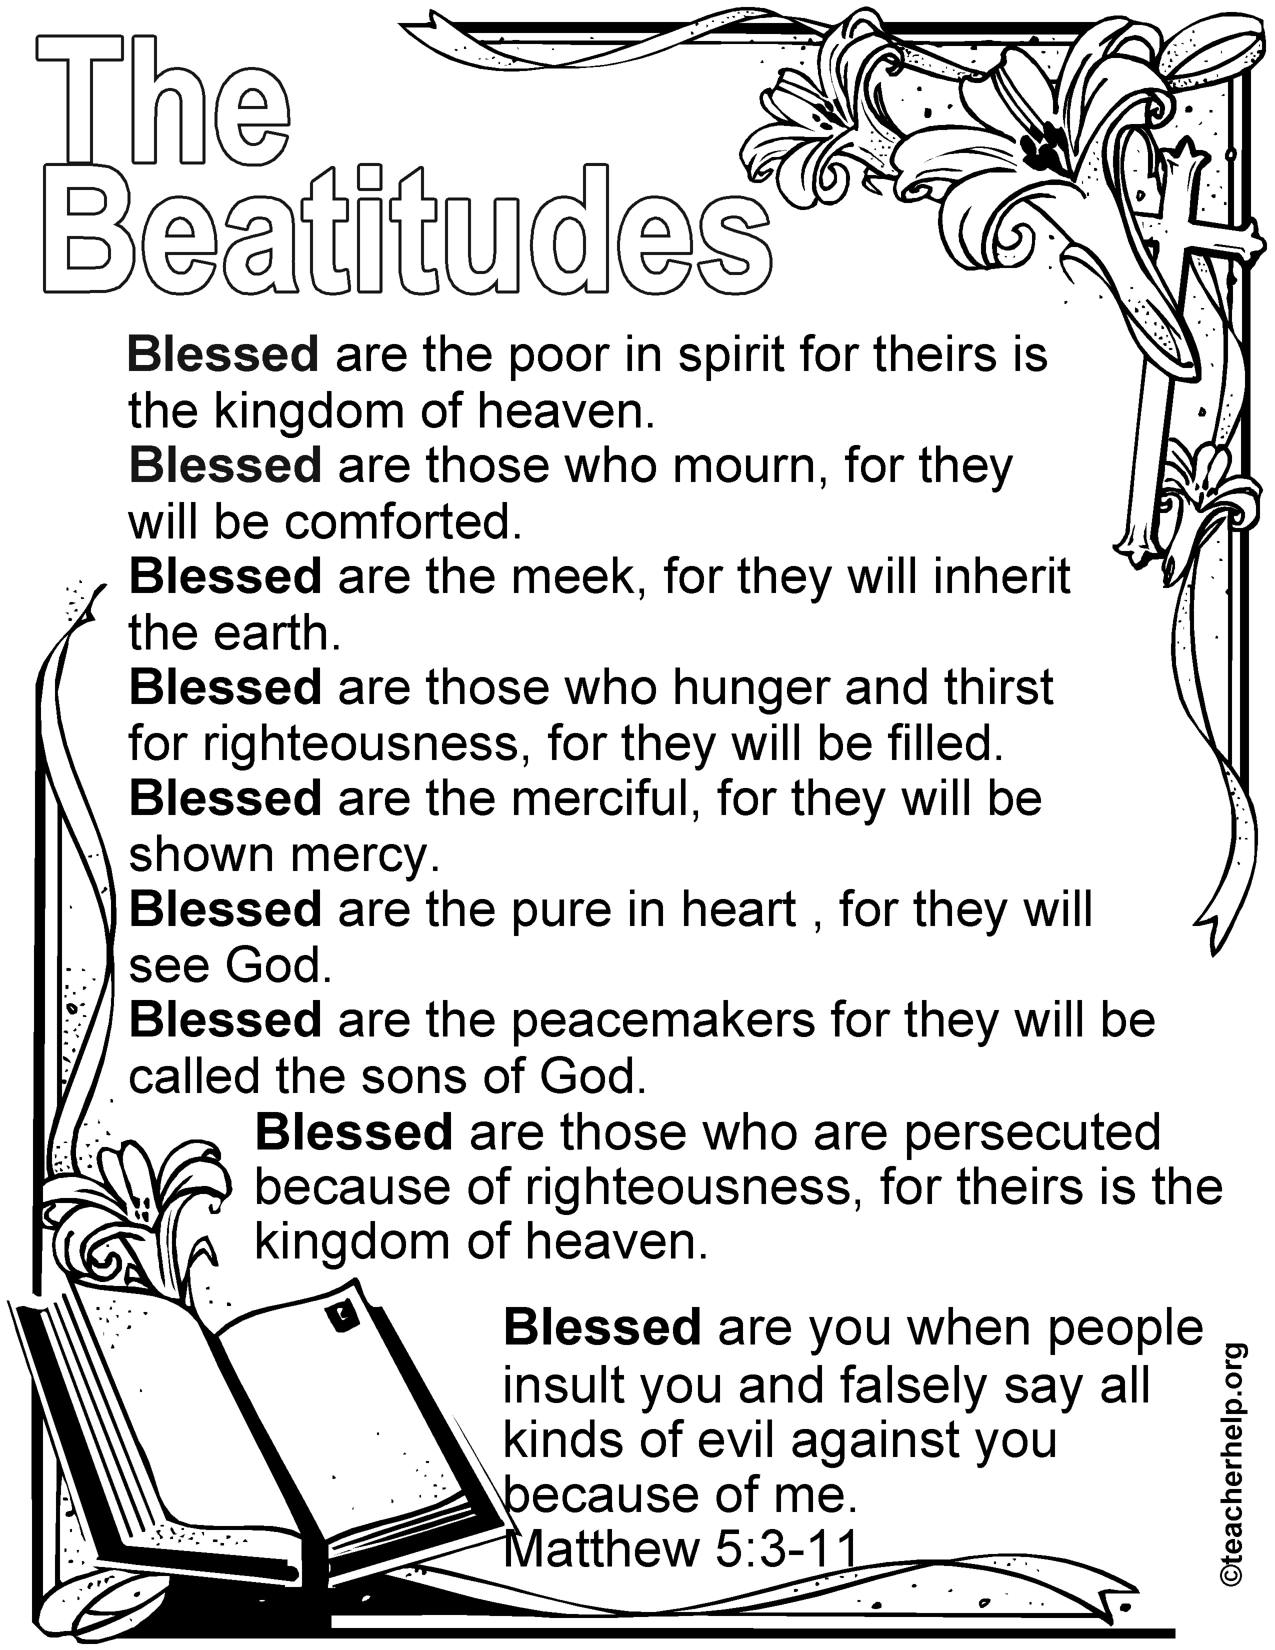 Guided By The Beatitudes Bloor Lansdowne Christian